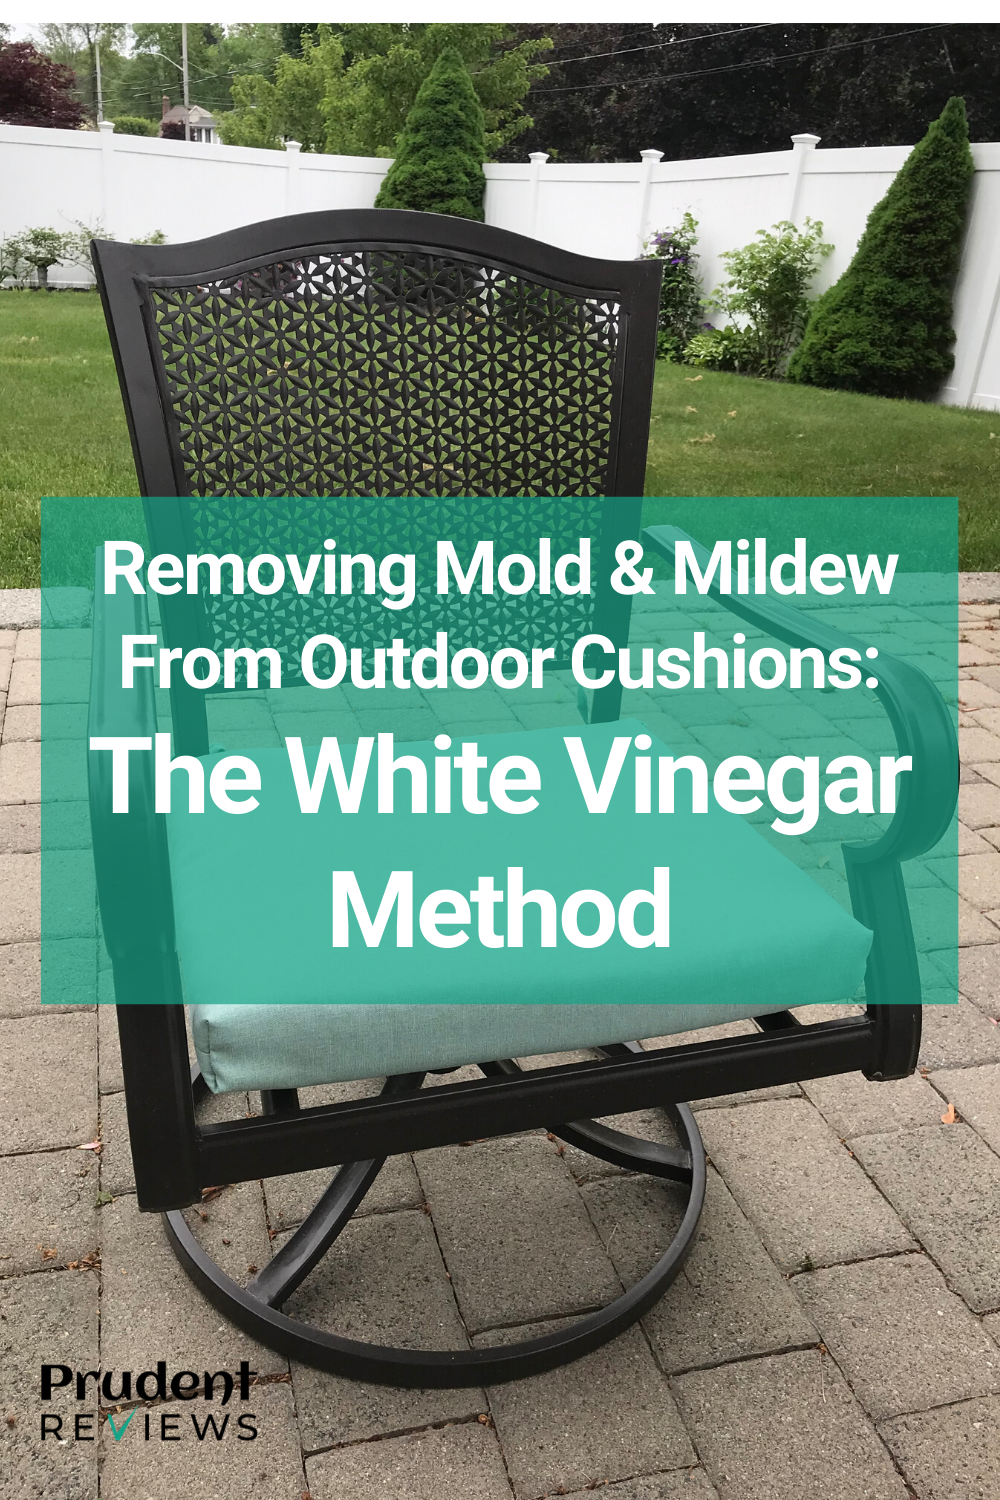 How To Remove Mold And Mildew From Outdoor Cushions Using White Vinegar Outdoor Cushions Patio Cushions Outdoor Mold Remover